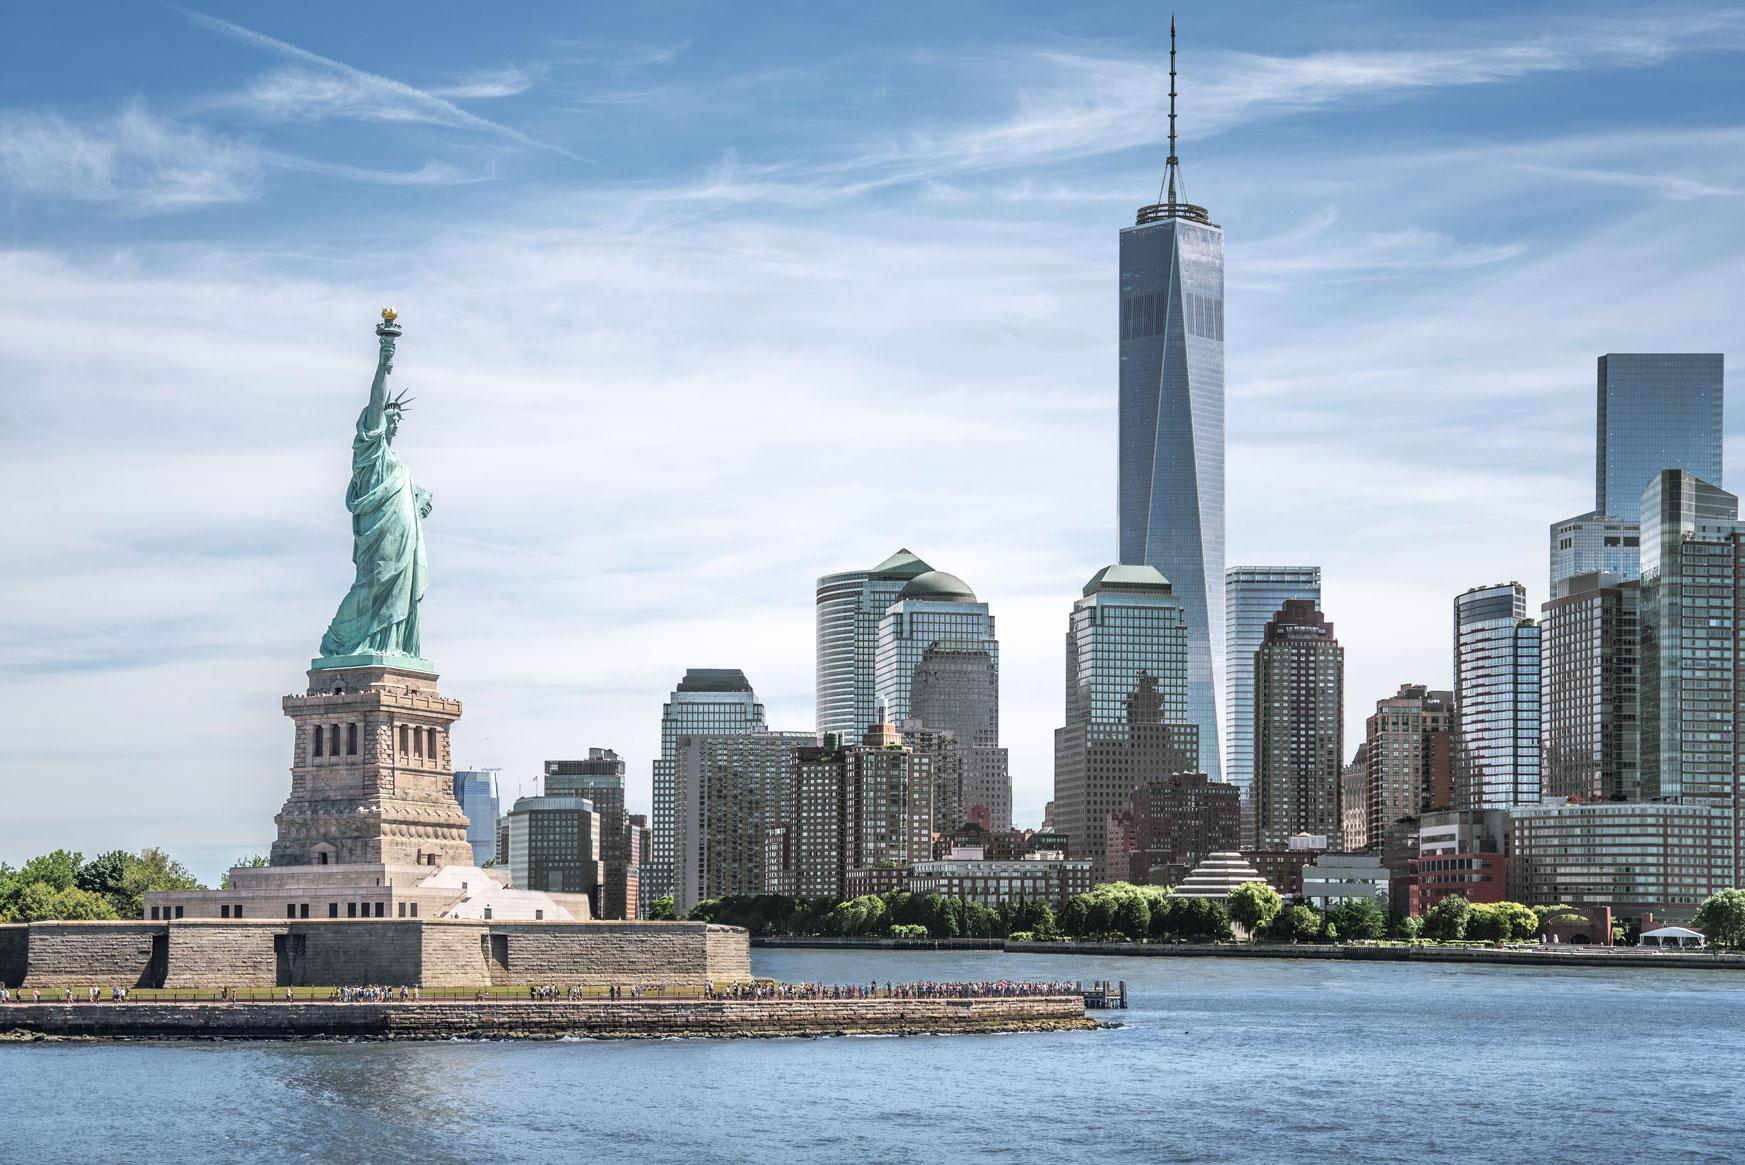 Experience the statue of liberty with United States vacation packages